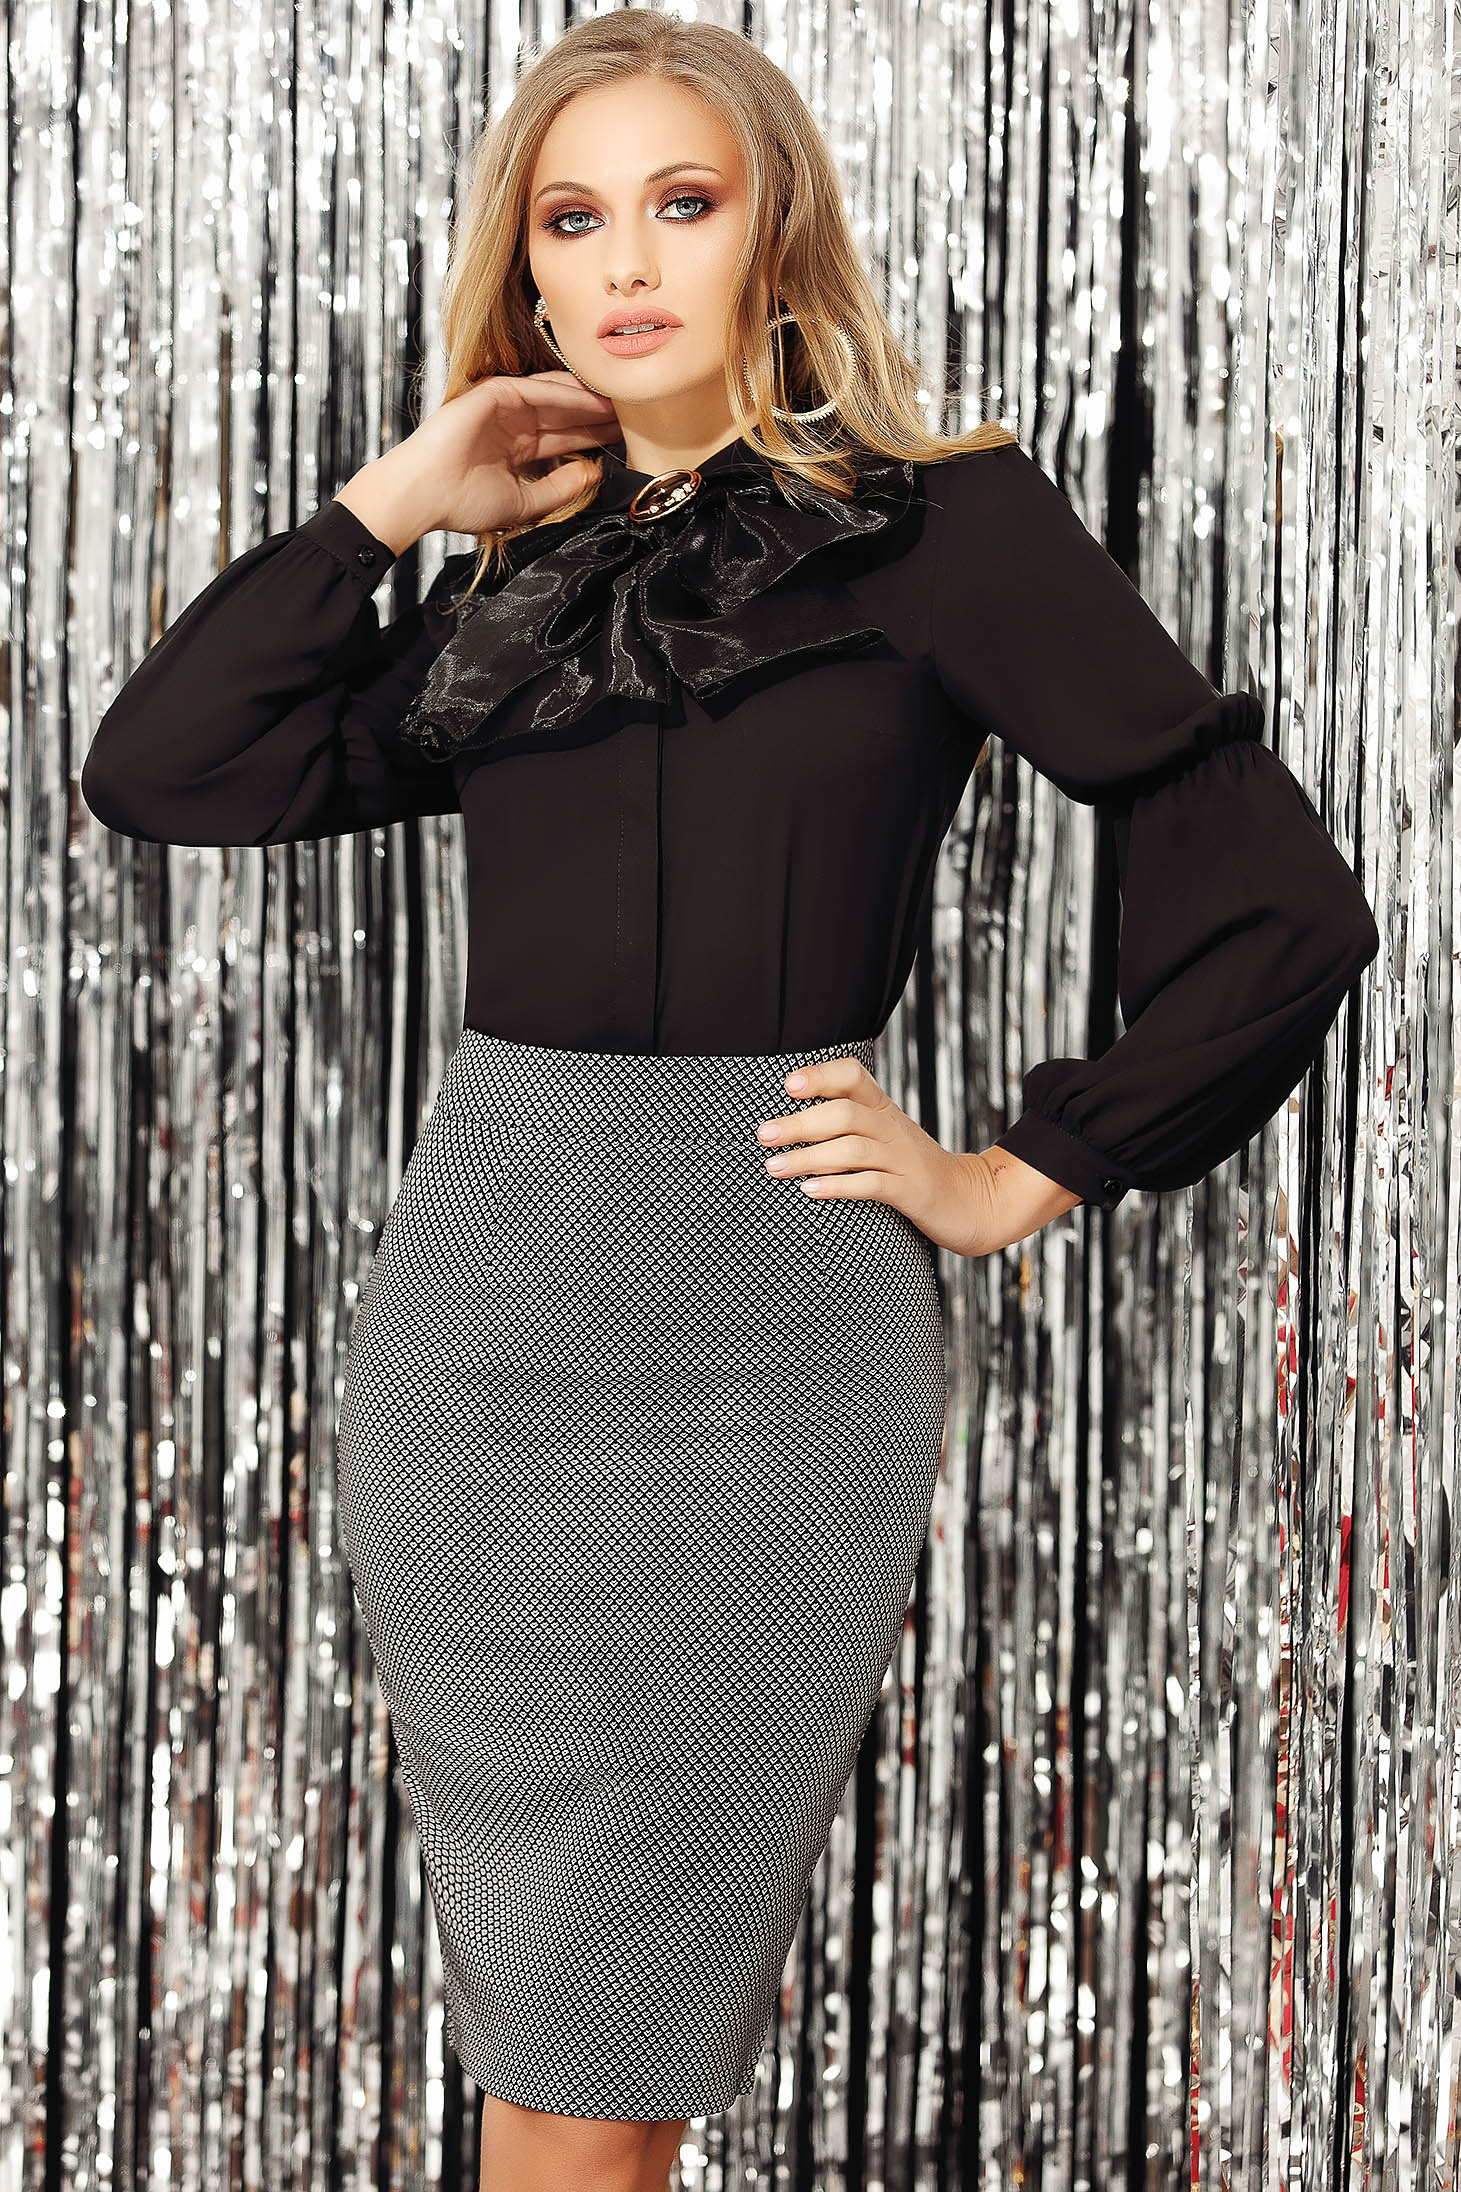 Black women`s blouse elegant short cut long sleeved from veil fabric accessorized with breastpin